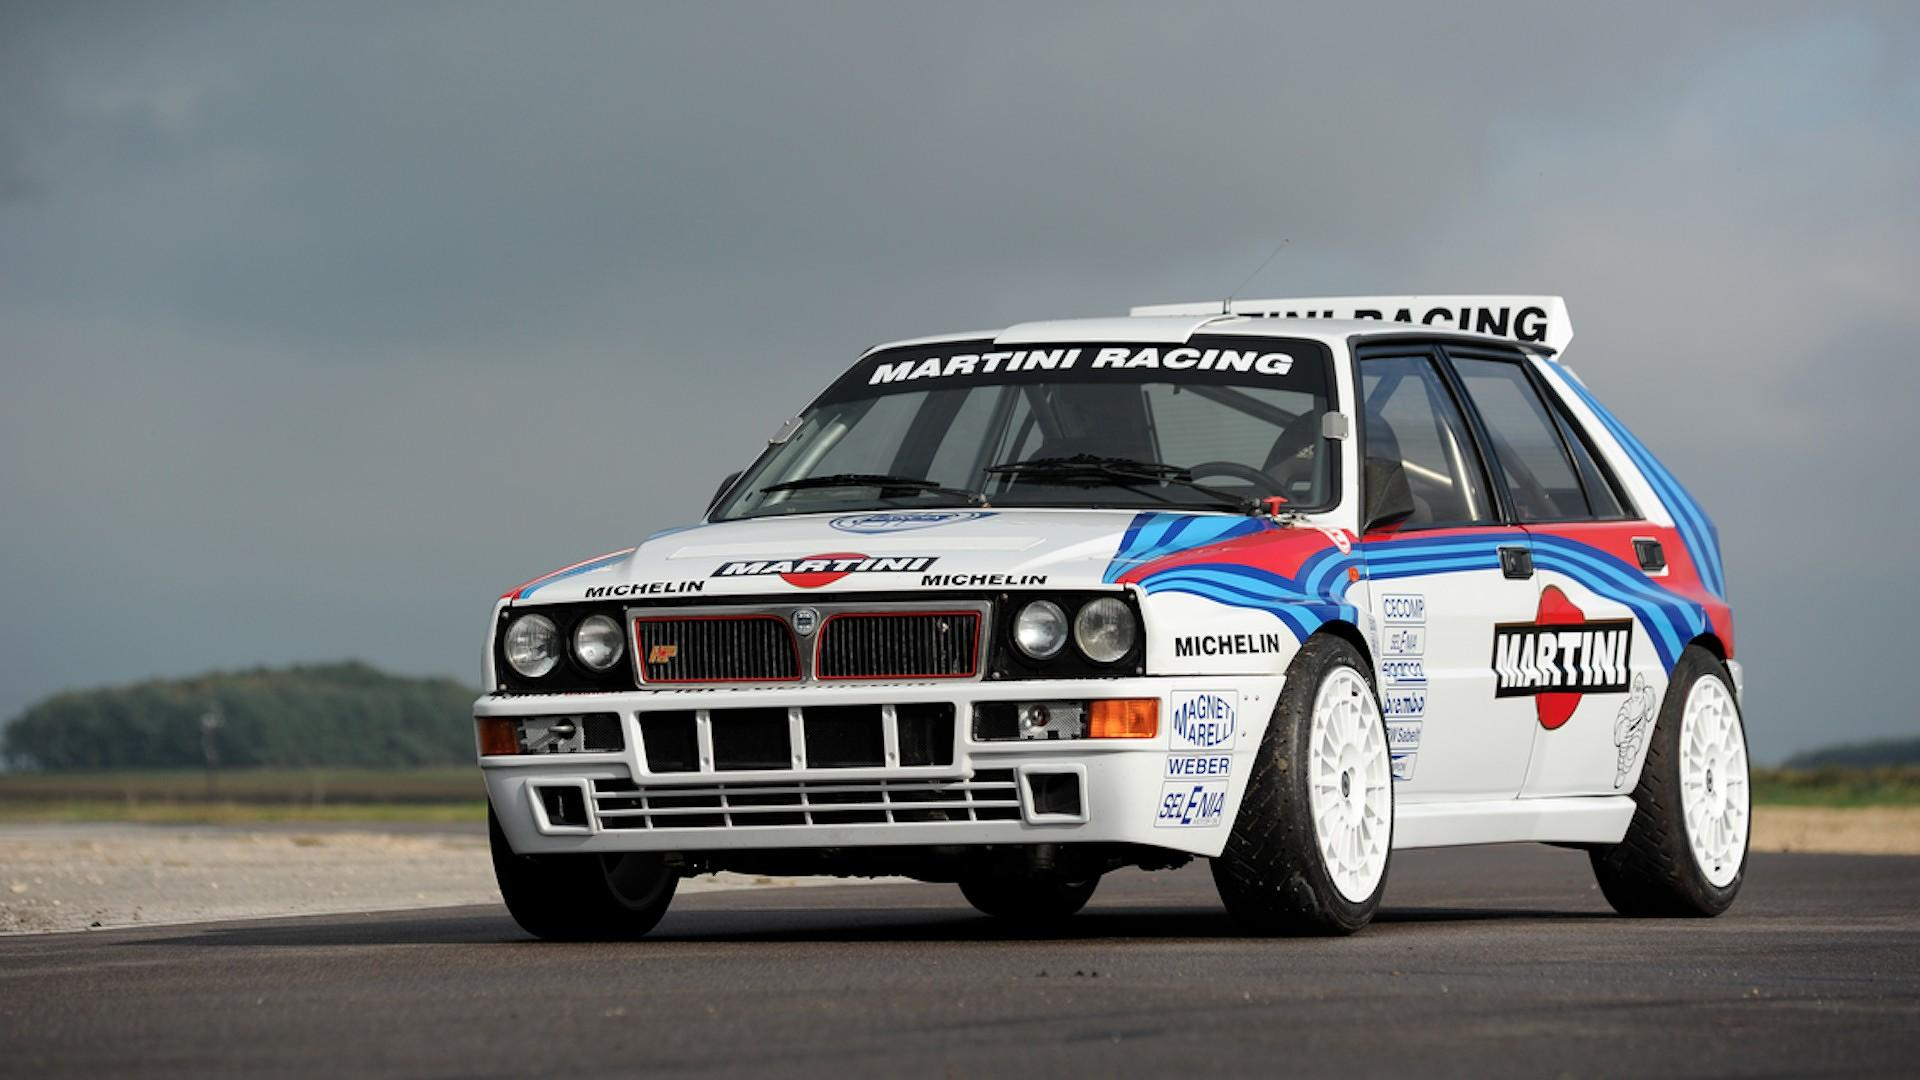 Audi Concept Car Wallpaper Rally Driven Lancia Delta Causes Bidding War Sells For 297k